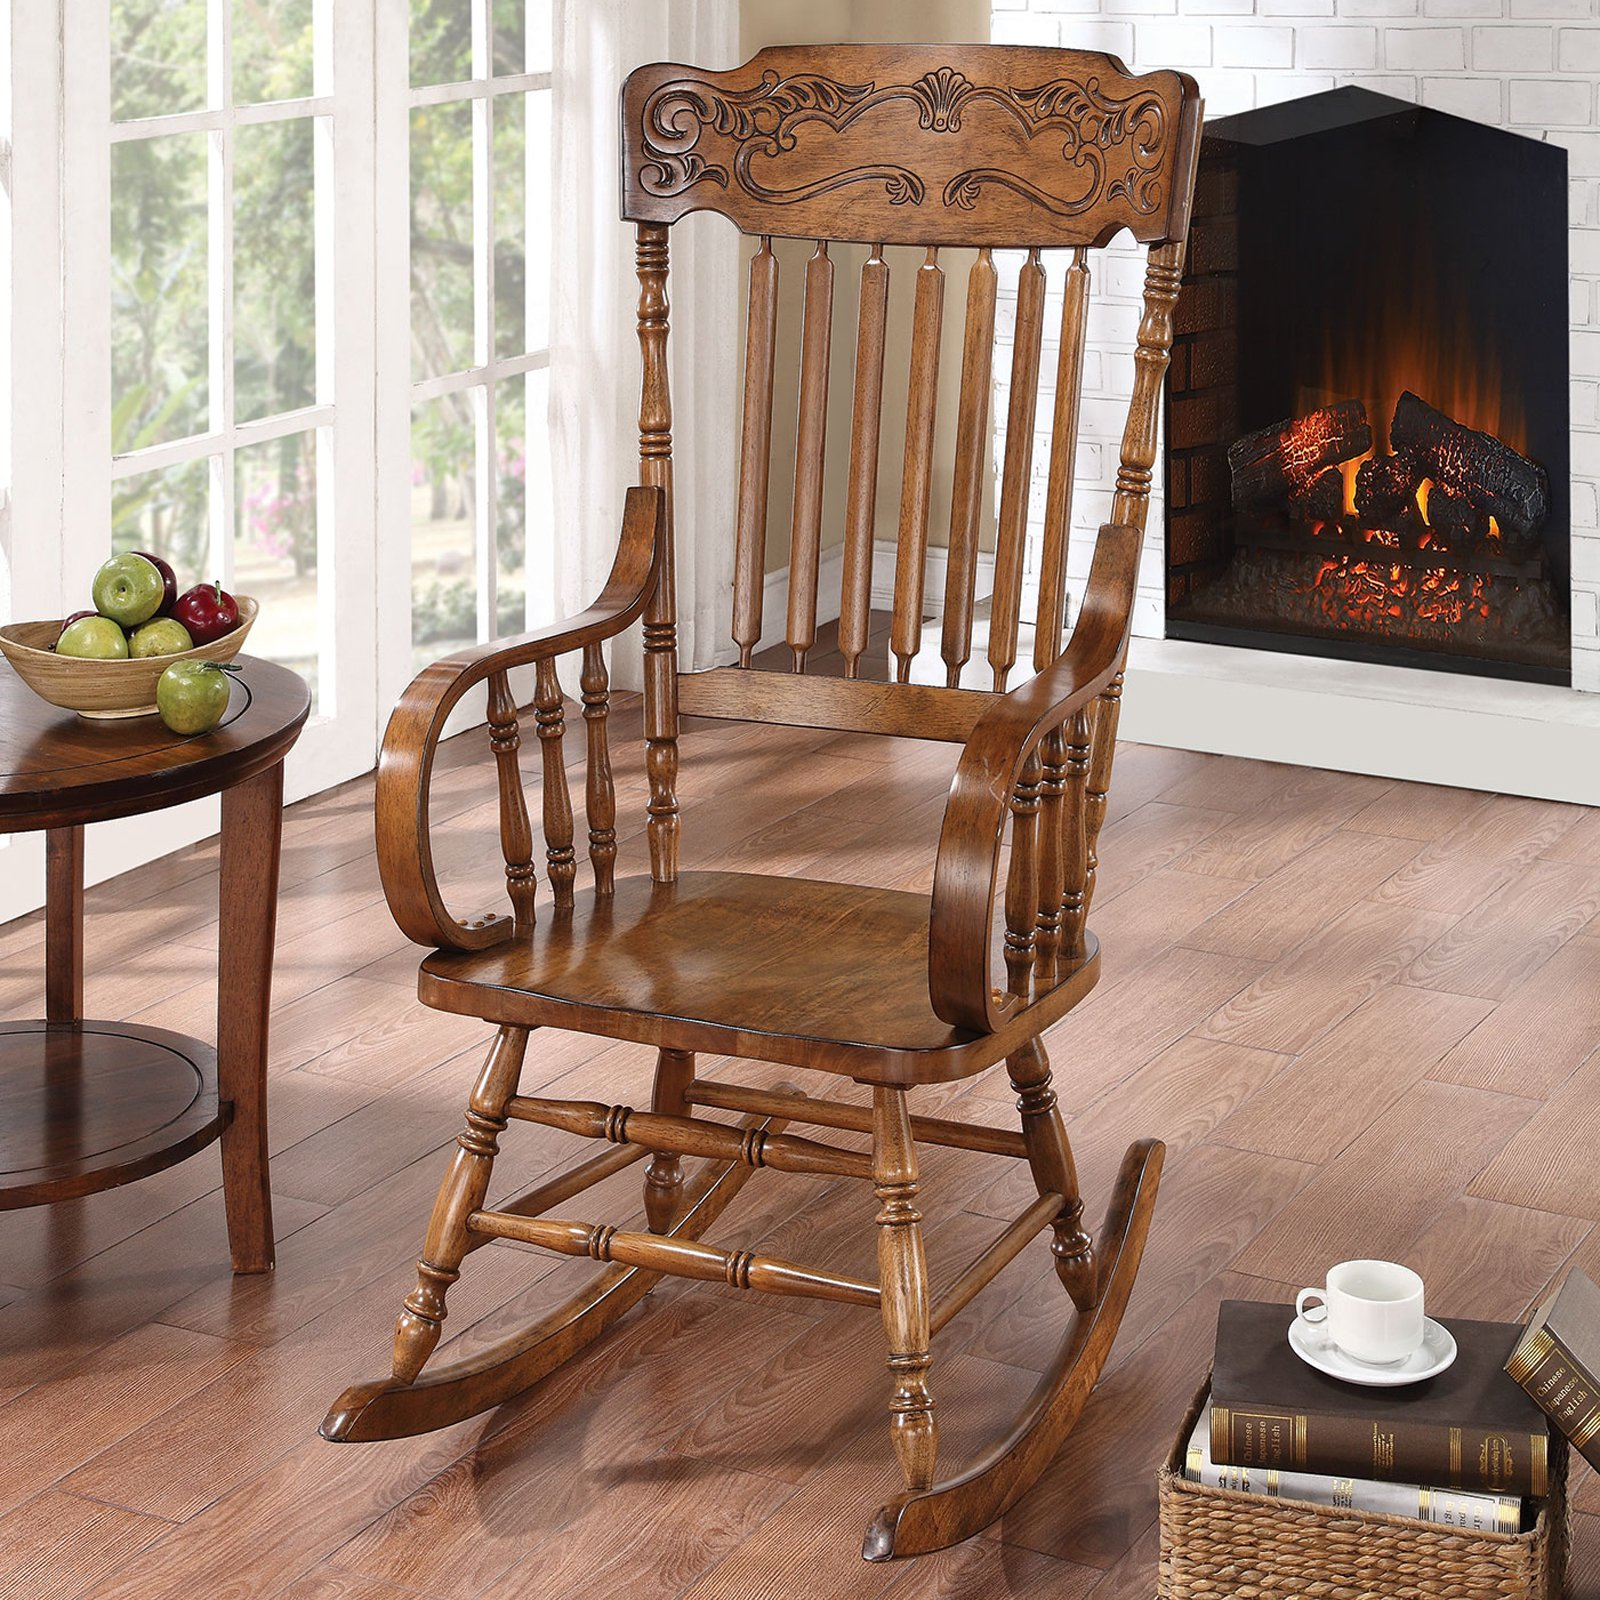 Coaster Ornamental Headrest Pattern Rocking Chair in Warm Brown by Coaster Company